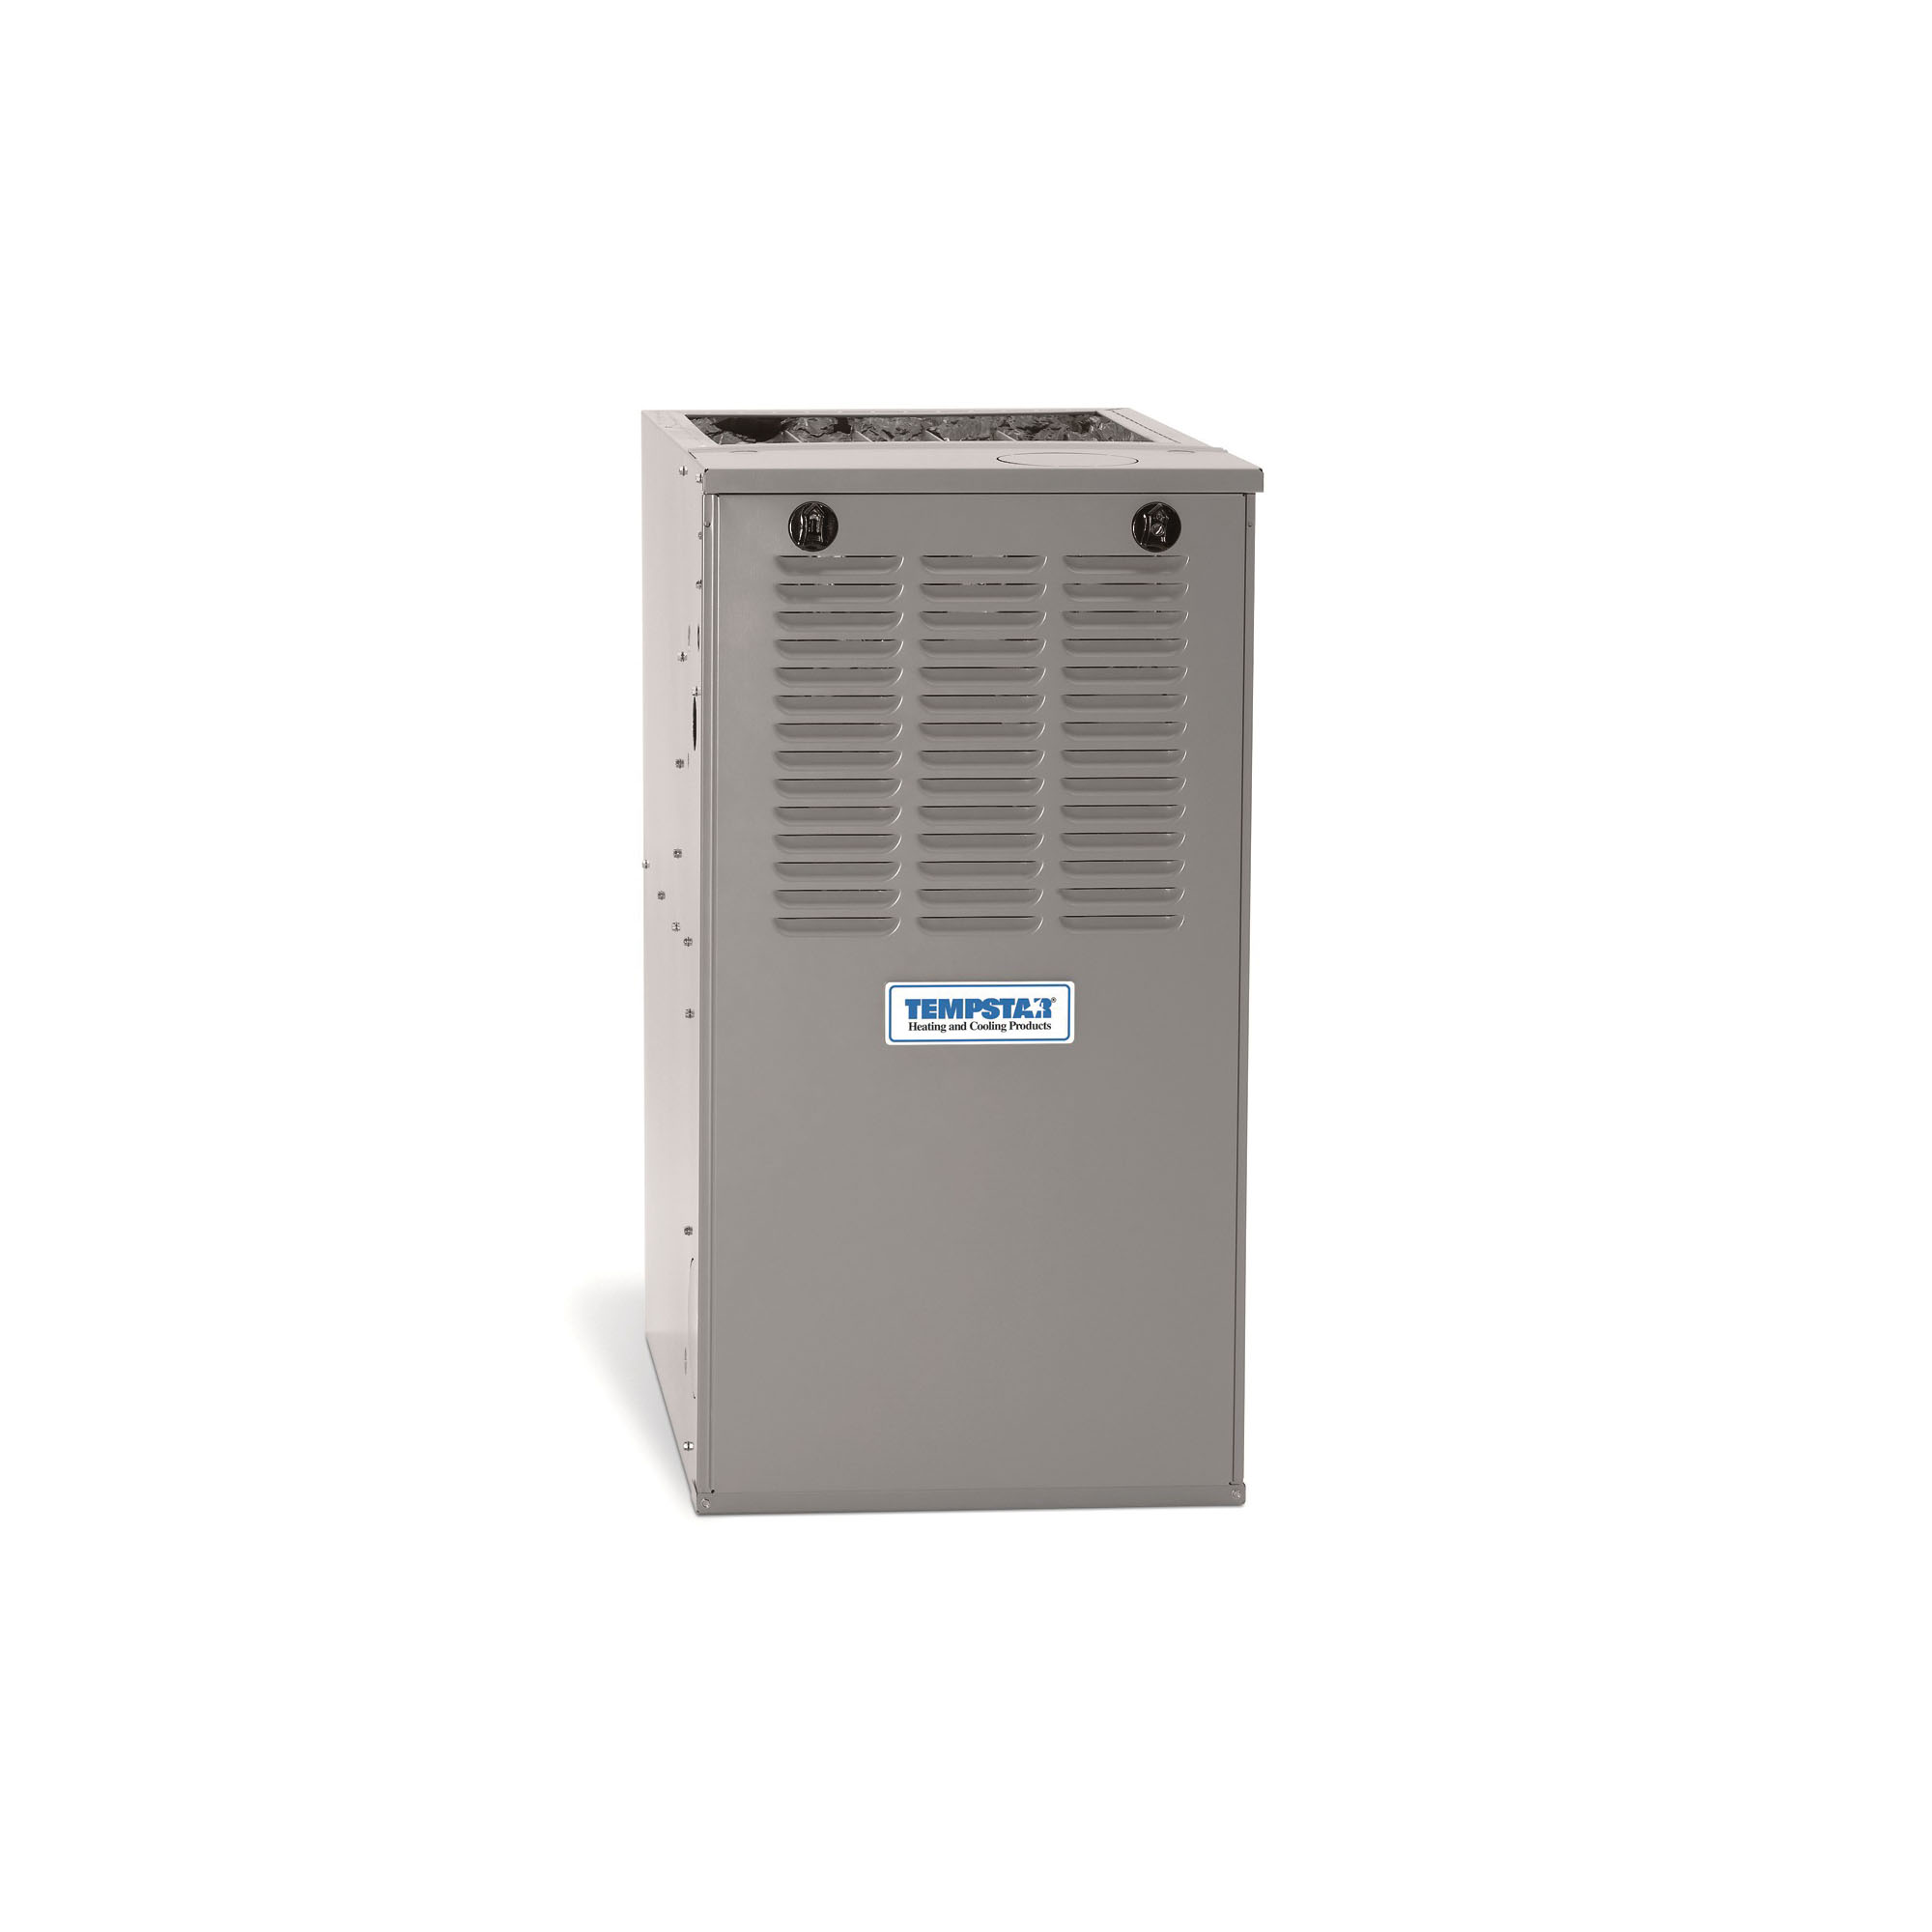 ICP® N8MSN1352116A Performance® 1-Stage Standard Multi-Position Gas Furnace, 132000 BTU/hr Input, 107000 BTU/hr Output, 115 VAC, 80 % AFUE, 1380 to 1710 cfm Cooling, 1480 cfm Heating, Domestic